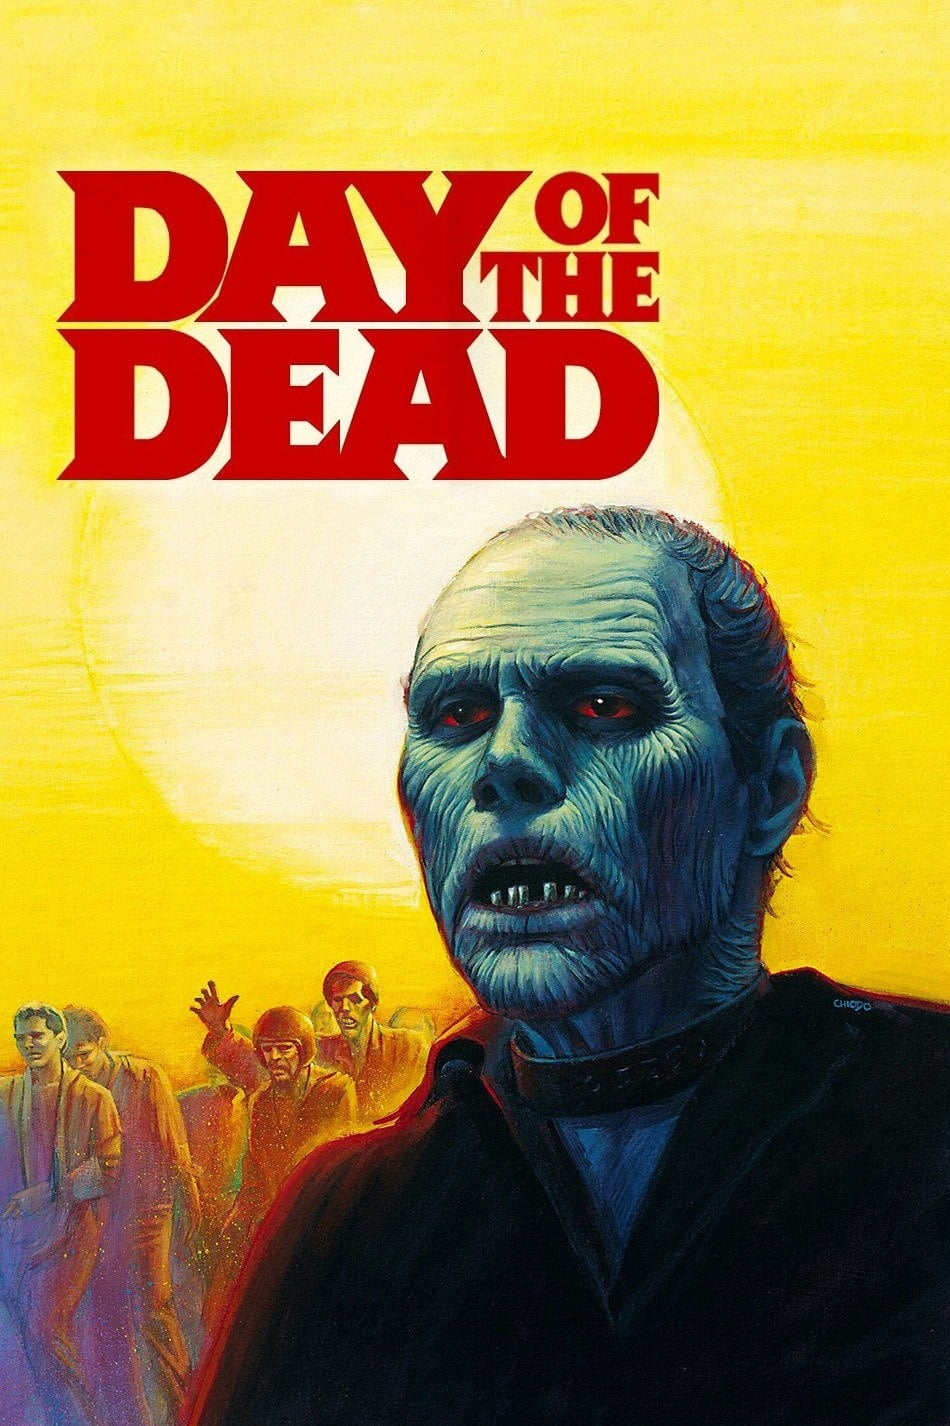 Day Of The Dead (1985) Gratis Films Kijken Met. Direction Signs. Alice Stickers. Lung Fluid Signs. Rocker Logo. Backside Stickers. Alpha Lettering. Taurus Signs. Softball Coach Decals